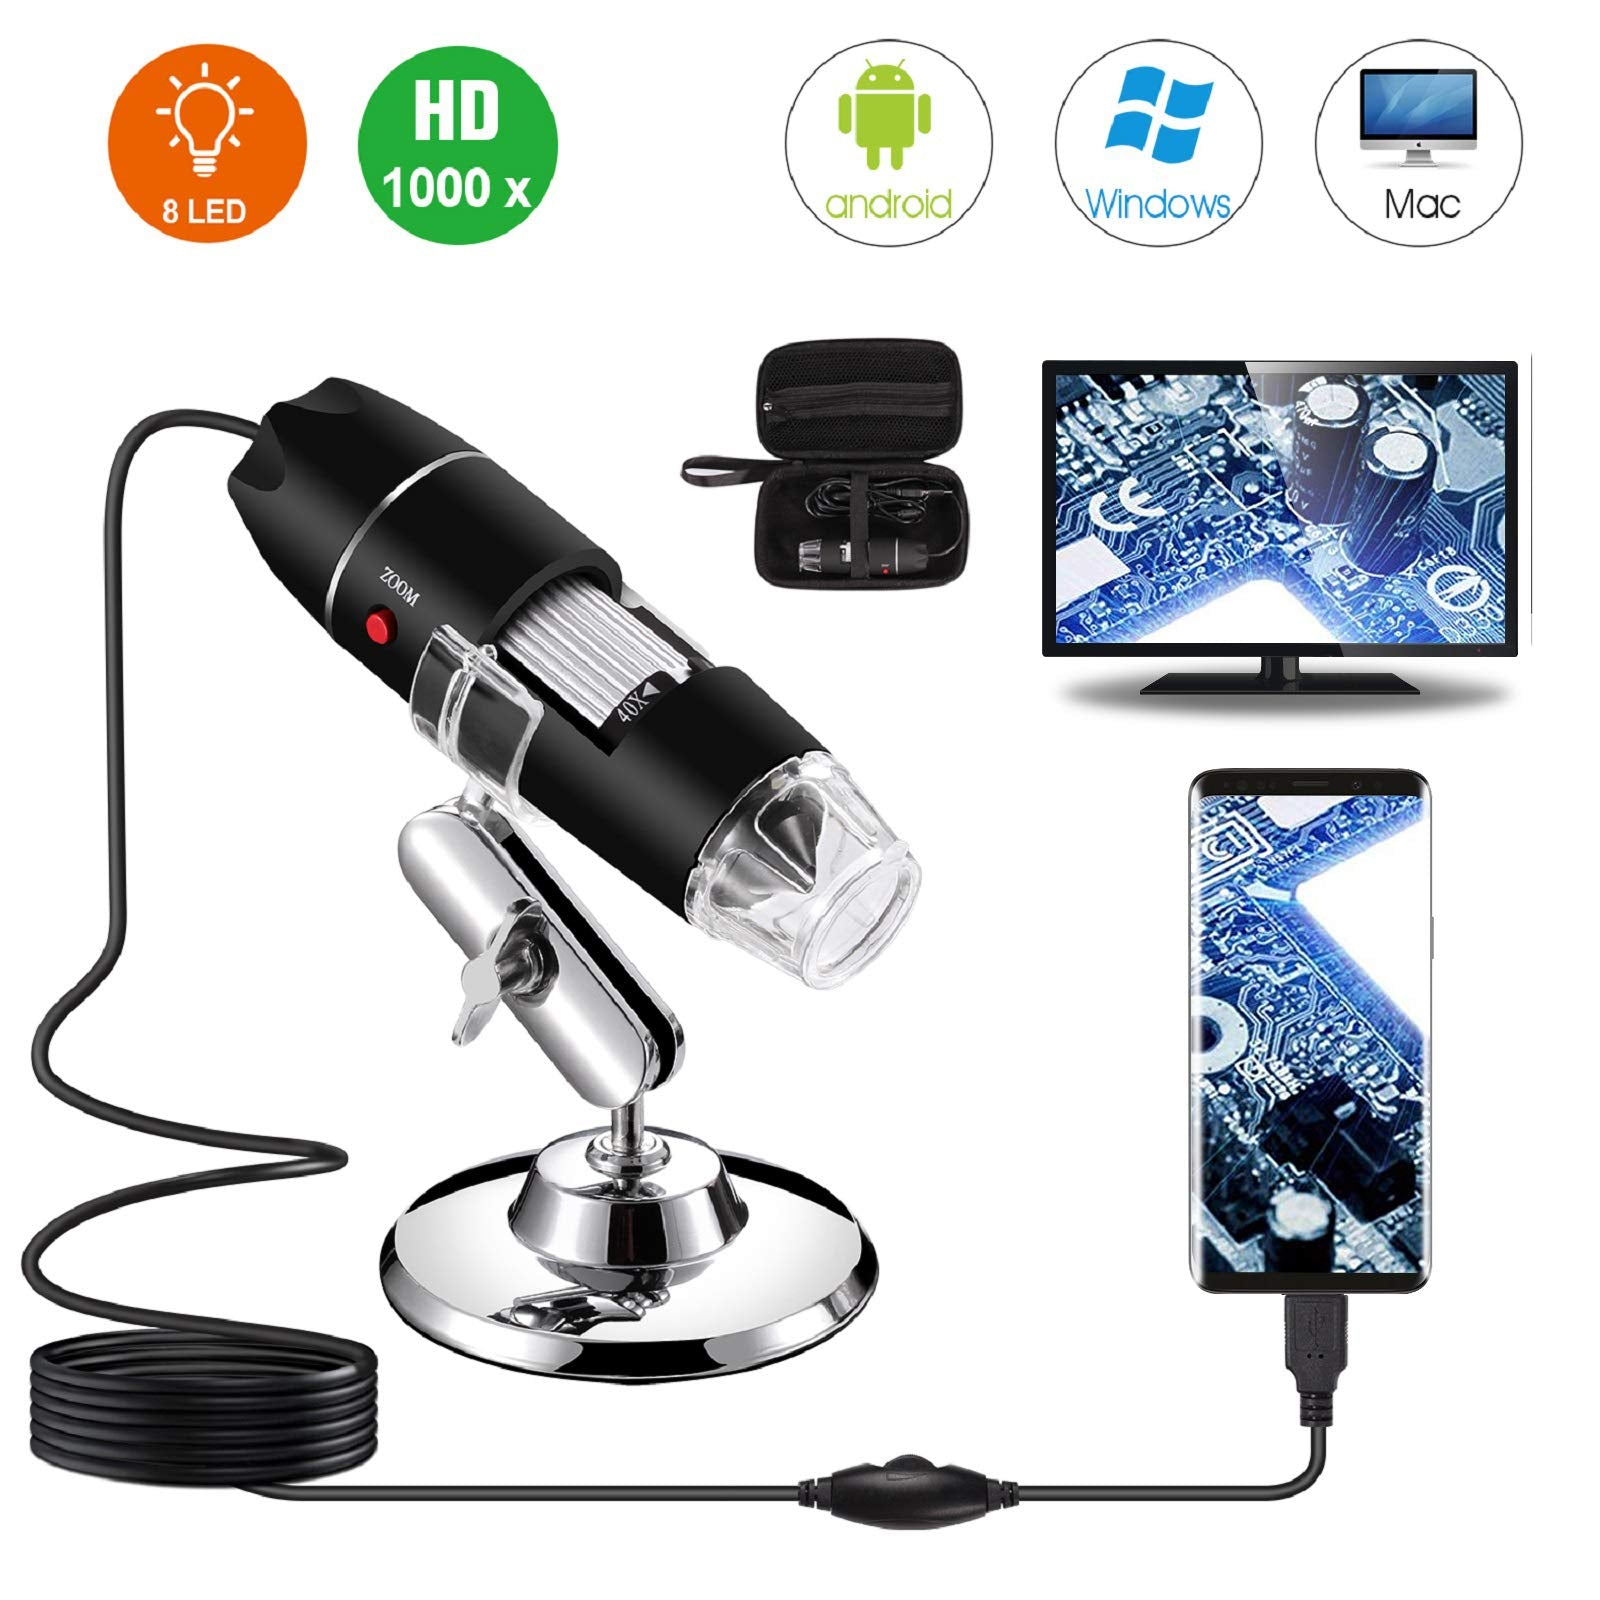 USB Digital Microscope 40X to 1000X 8 LED Magnification Endoscope Camera Carrying Case Metal Stand Compatible for Android Windows 7 8 10 Linux Mac